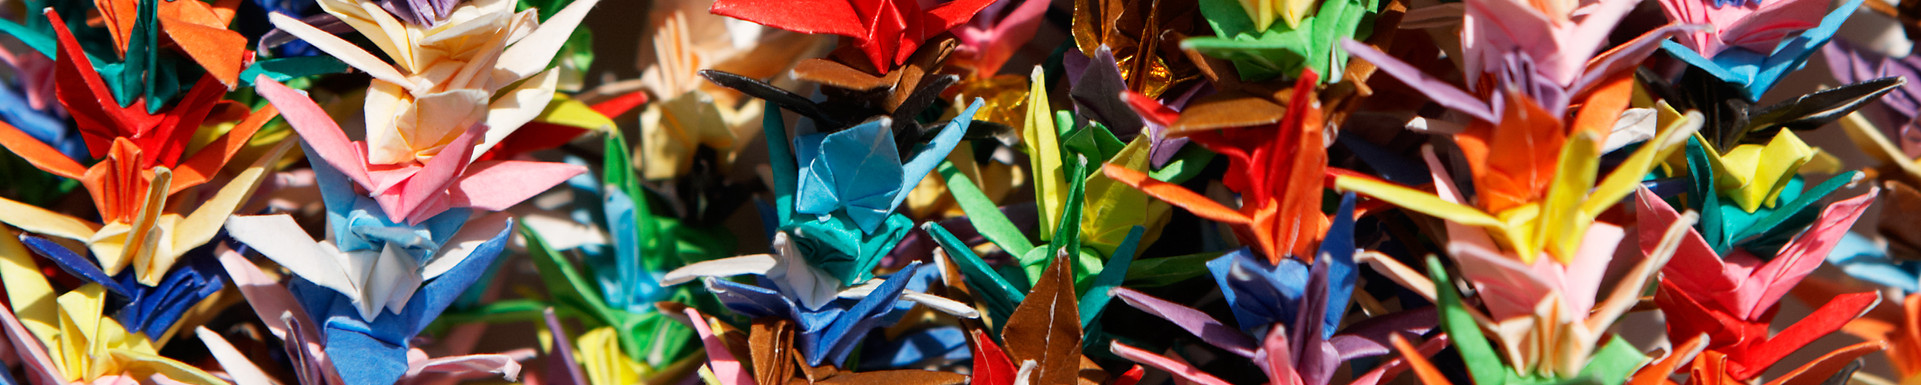 Paper Cranes at Orizuru Tower